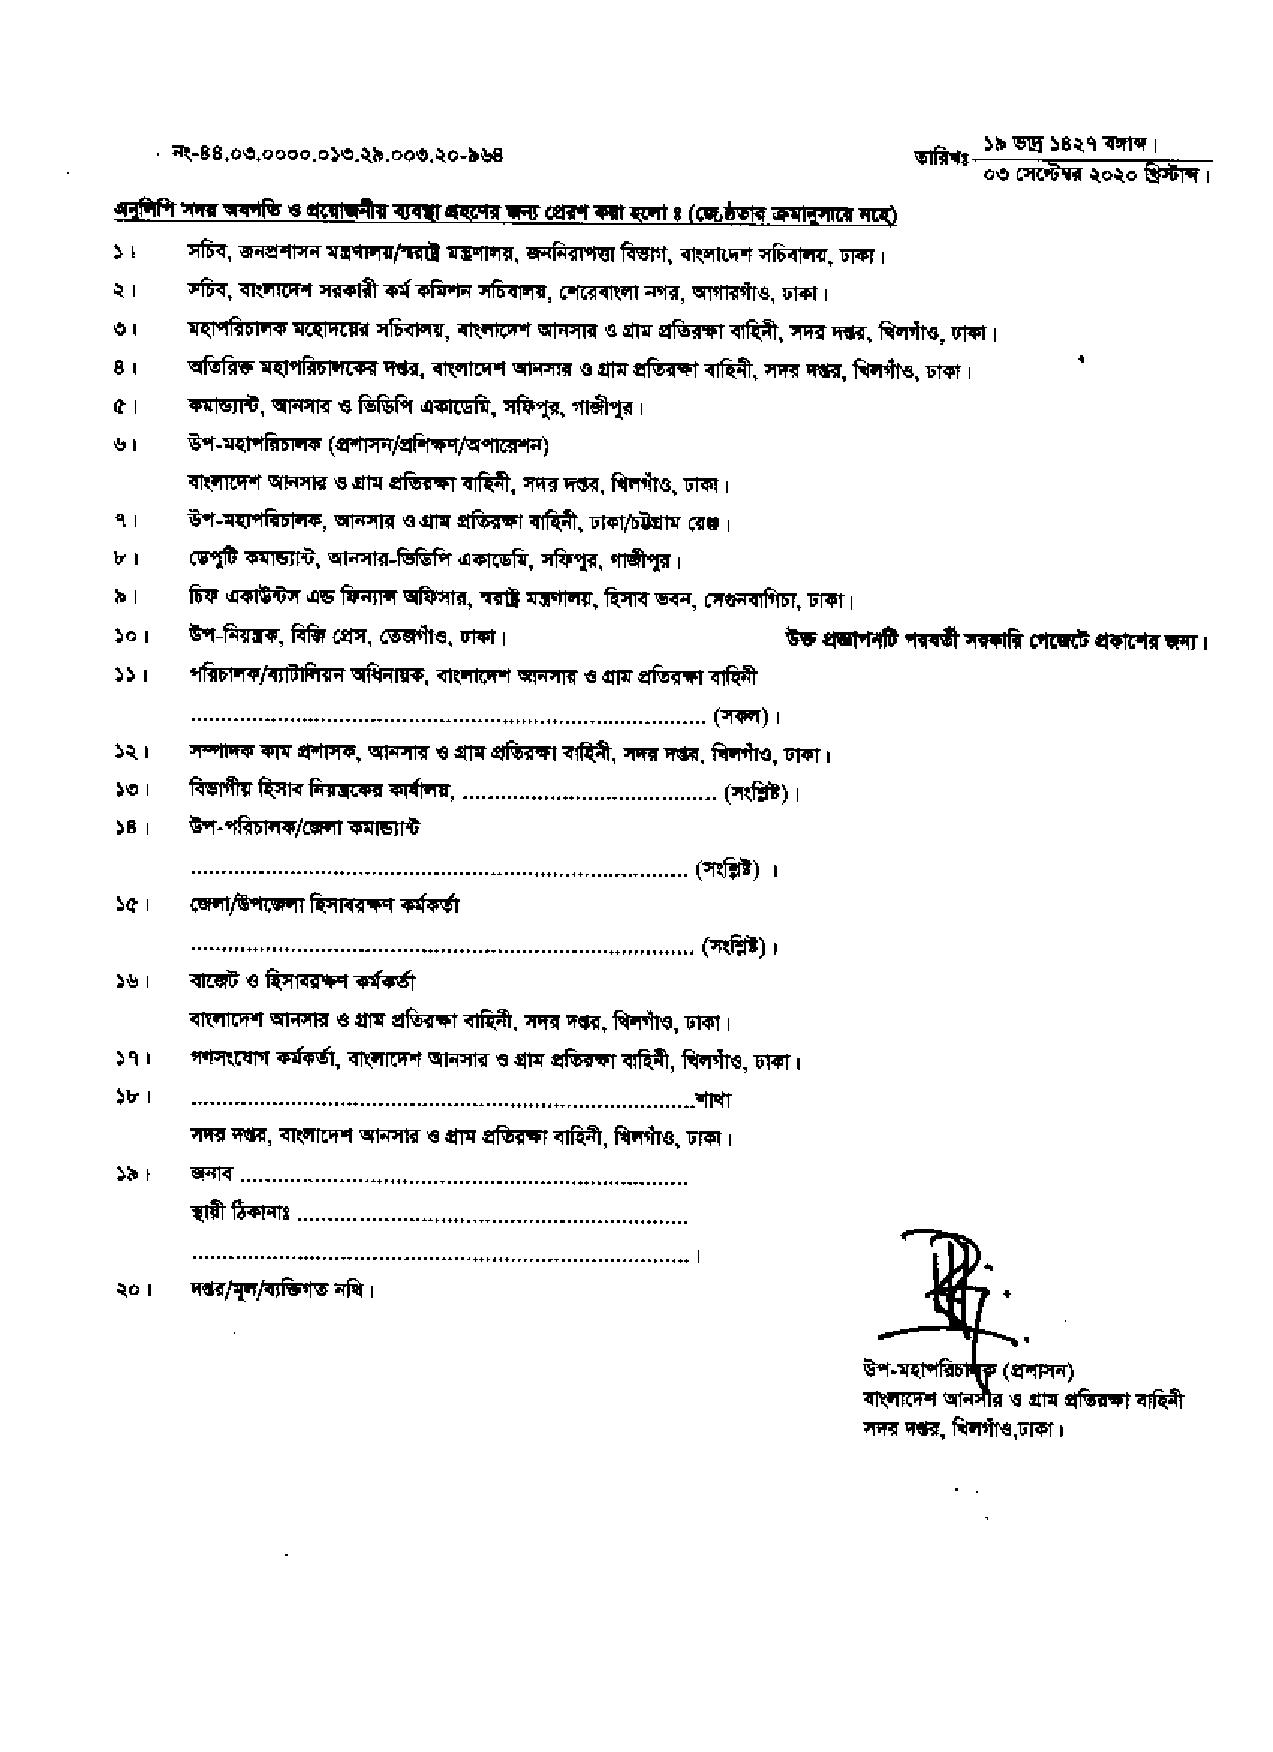 Bangladesh Ansar VDP Job Exam Final Result 2020